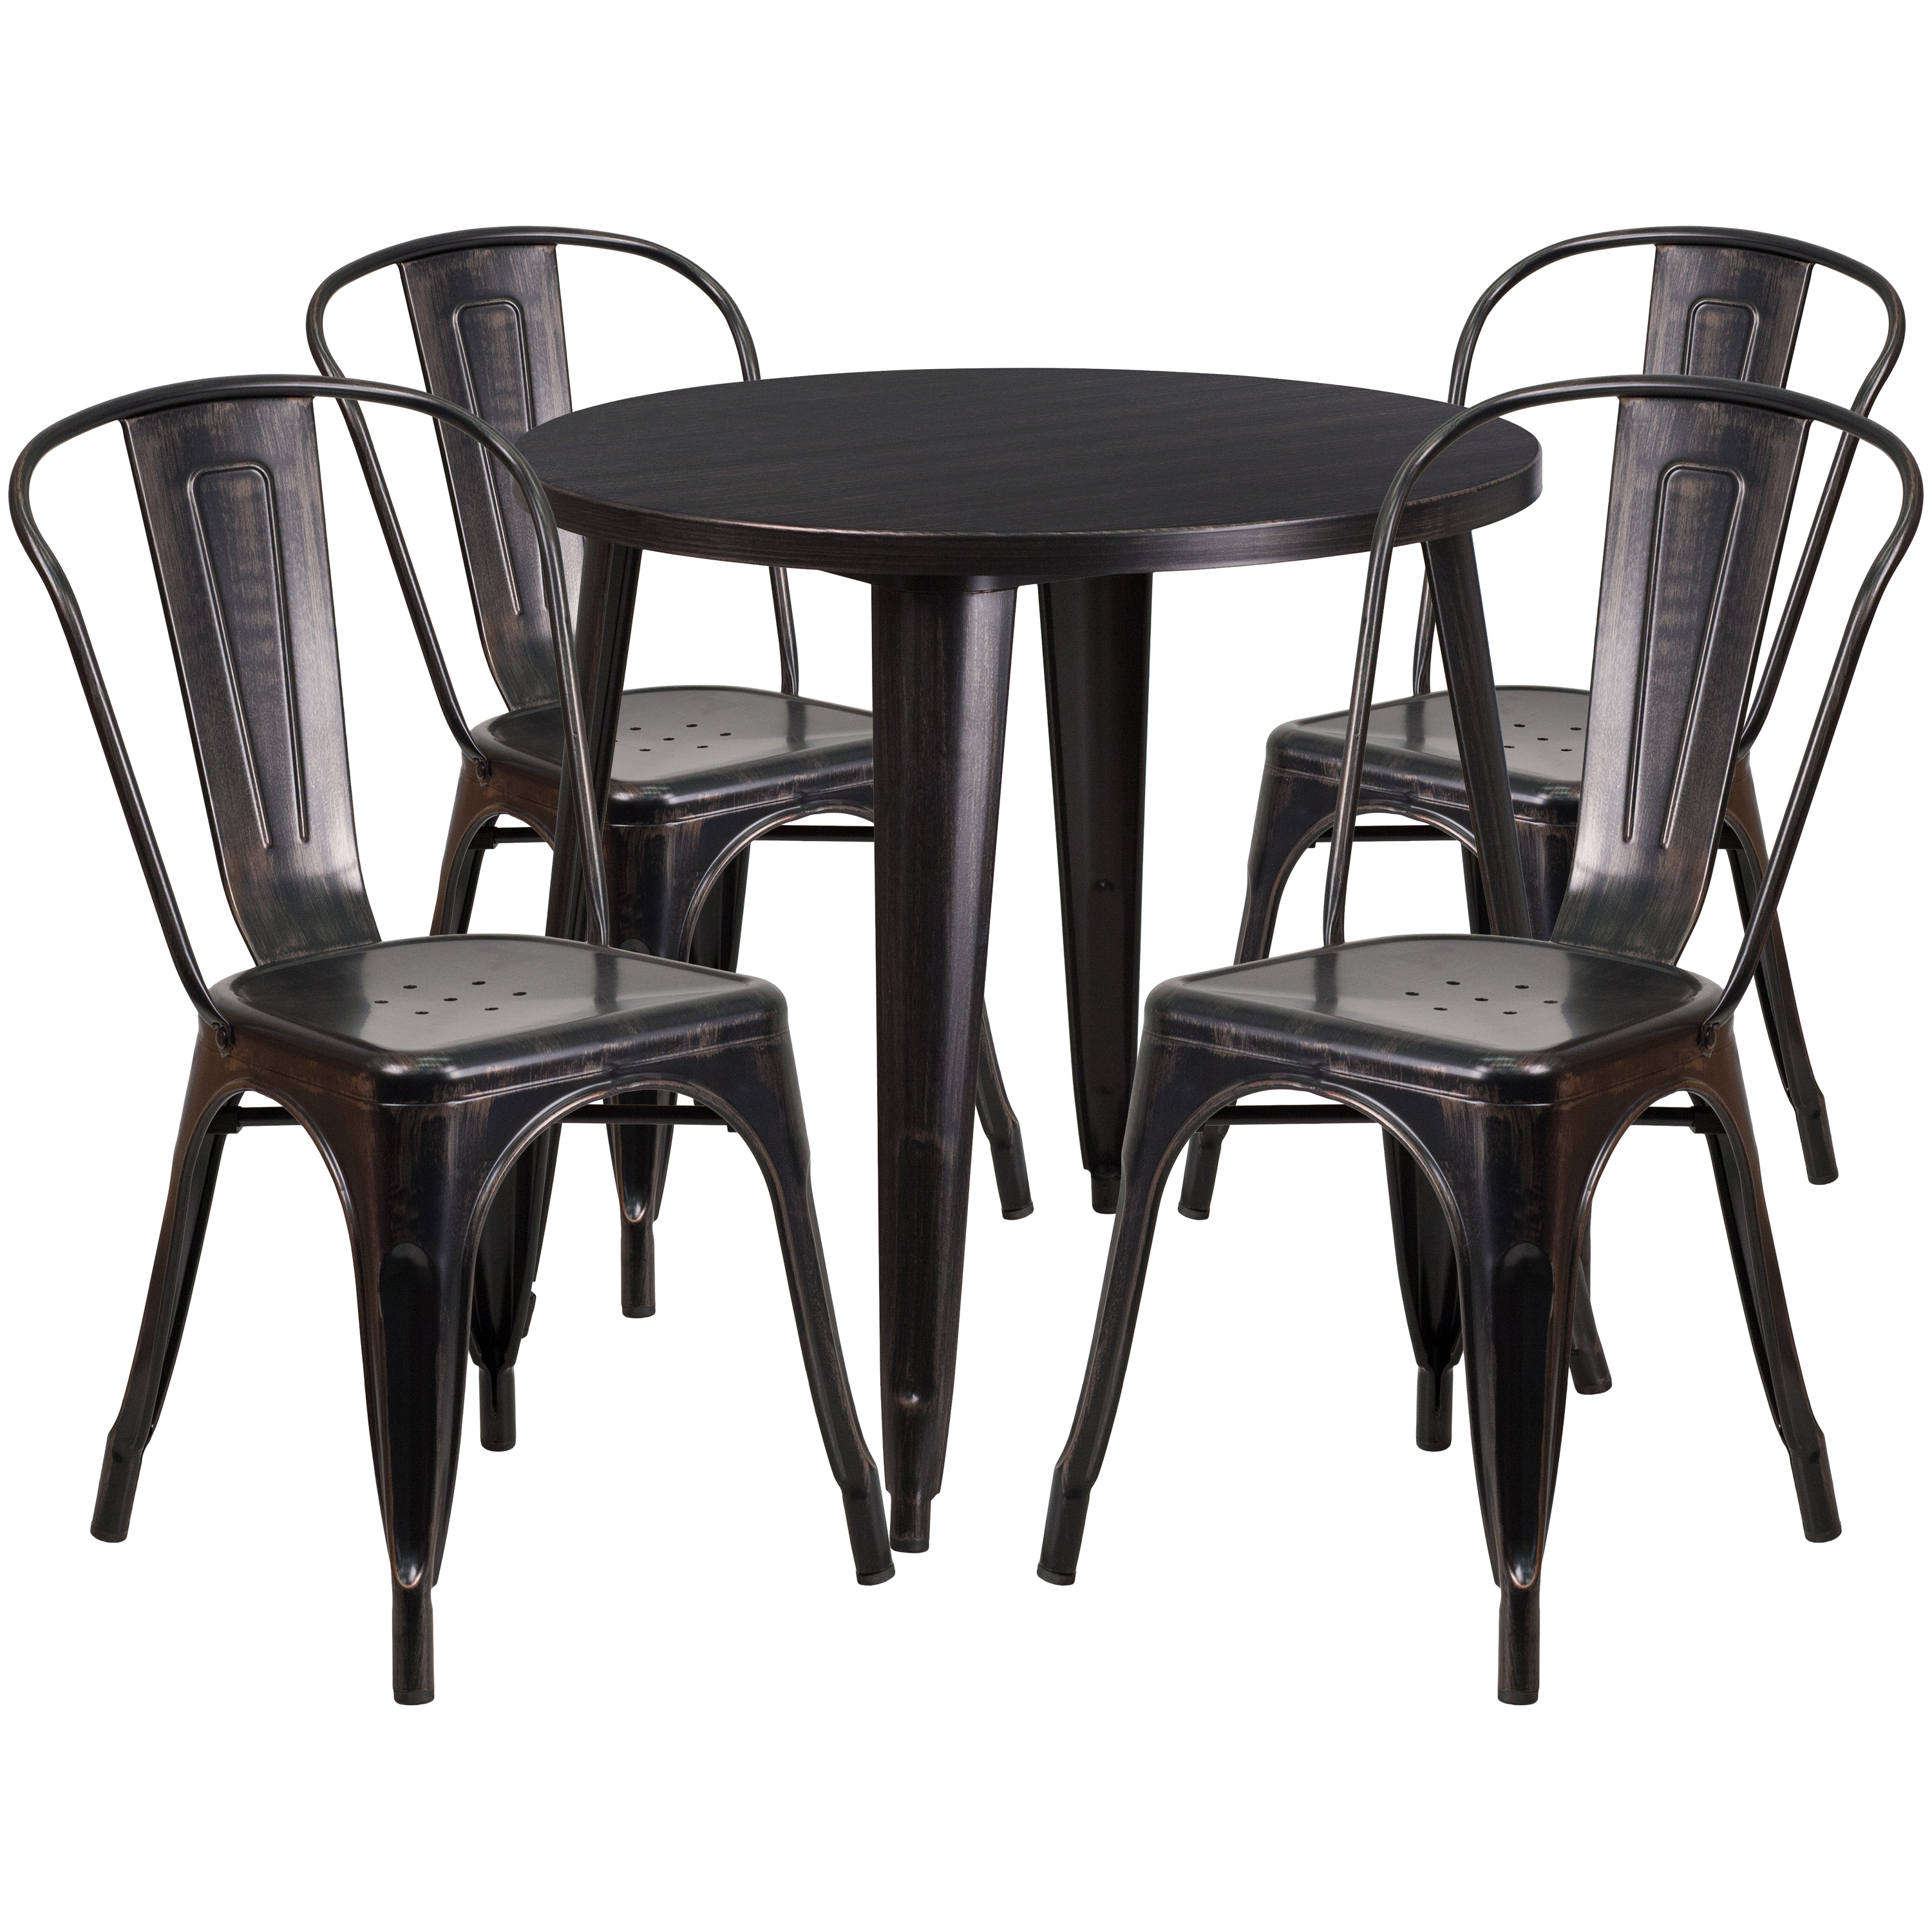 "Flash Furniture 30"" Round Black-Antique Gold Metal Indoor-Outdoor Table Set with 4 Cafe Chairs"